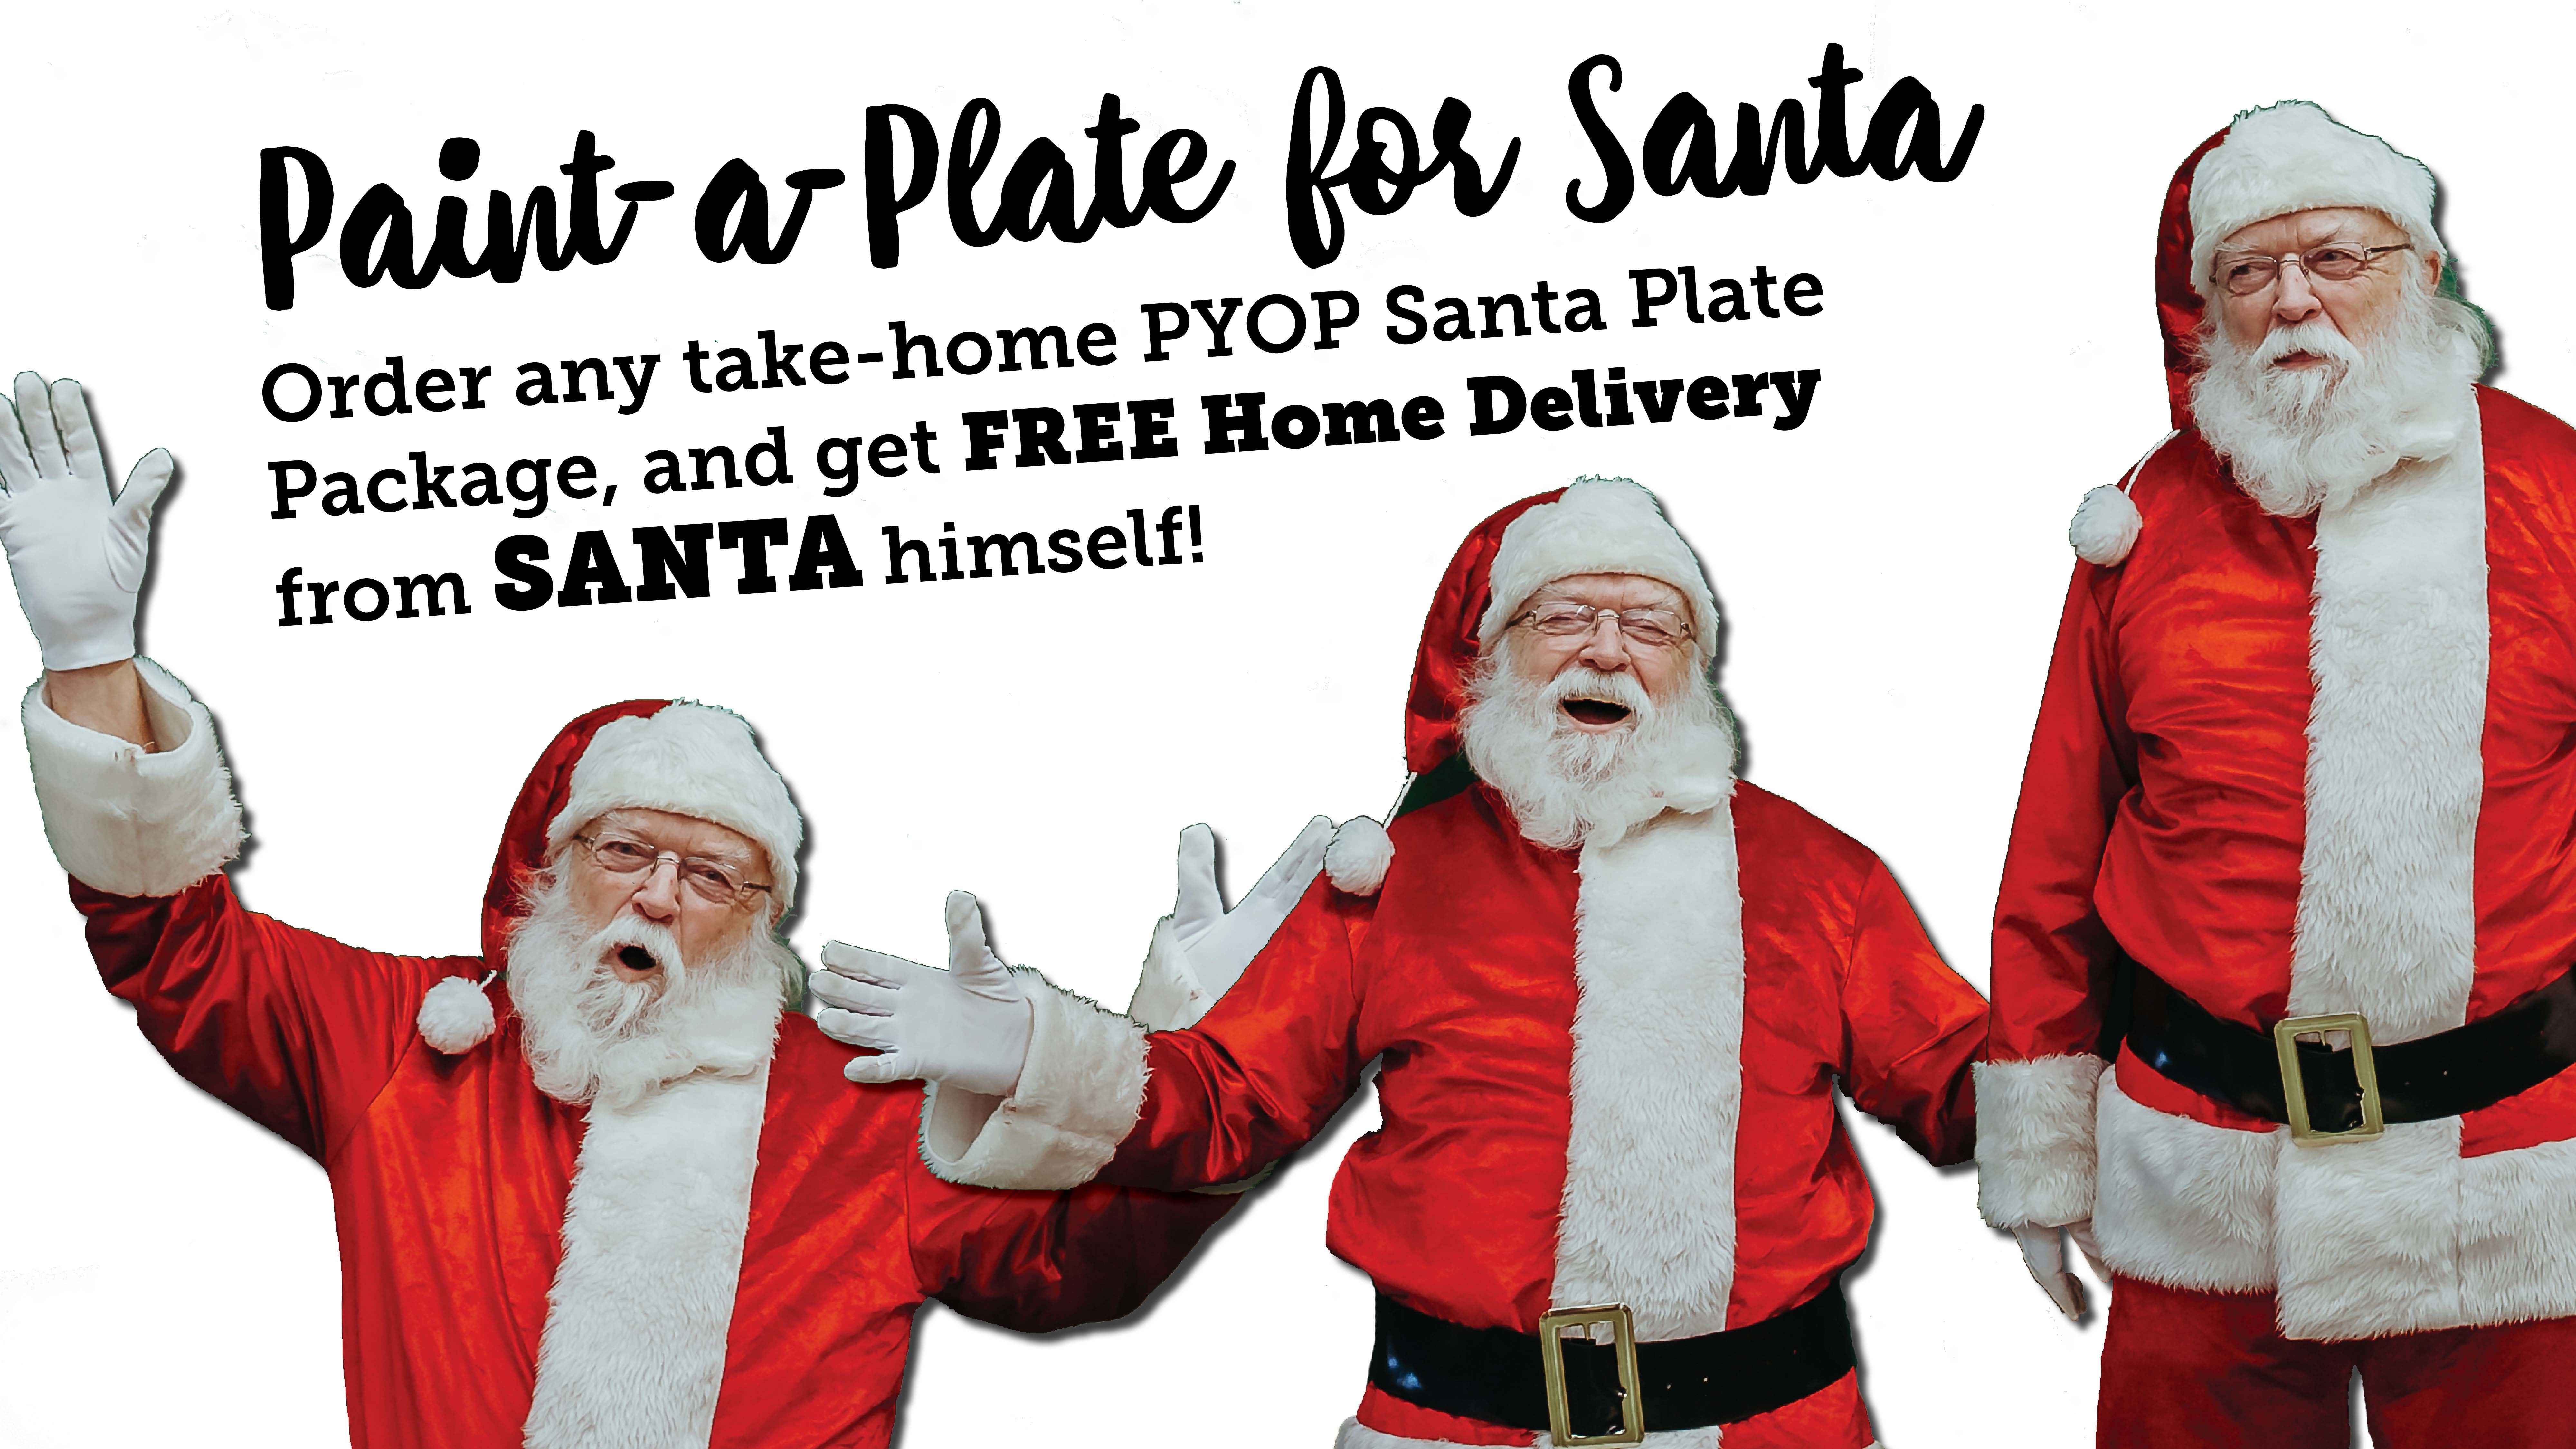 Paint-a-Plate for Santa!